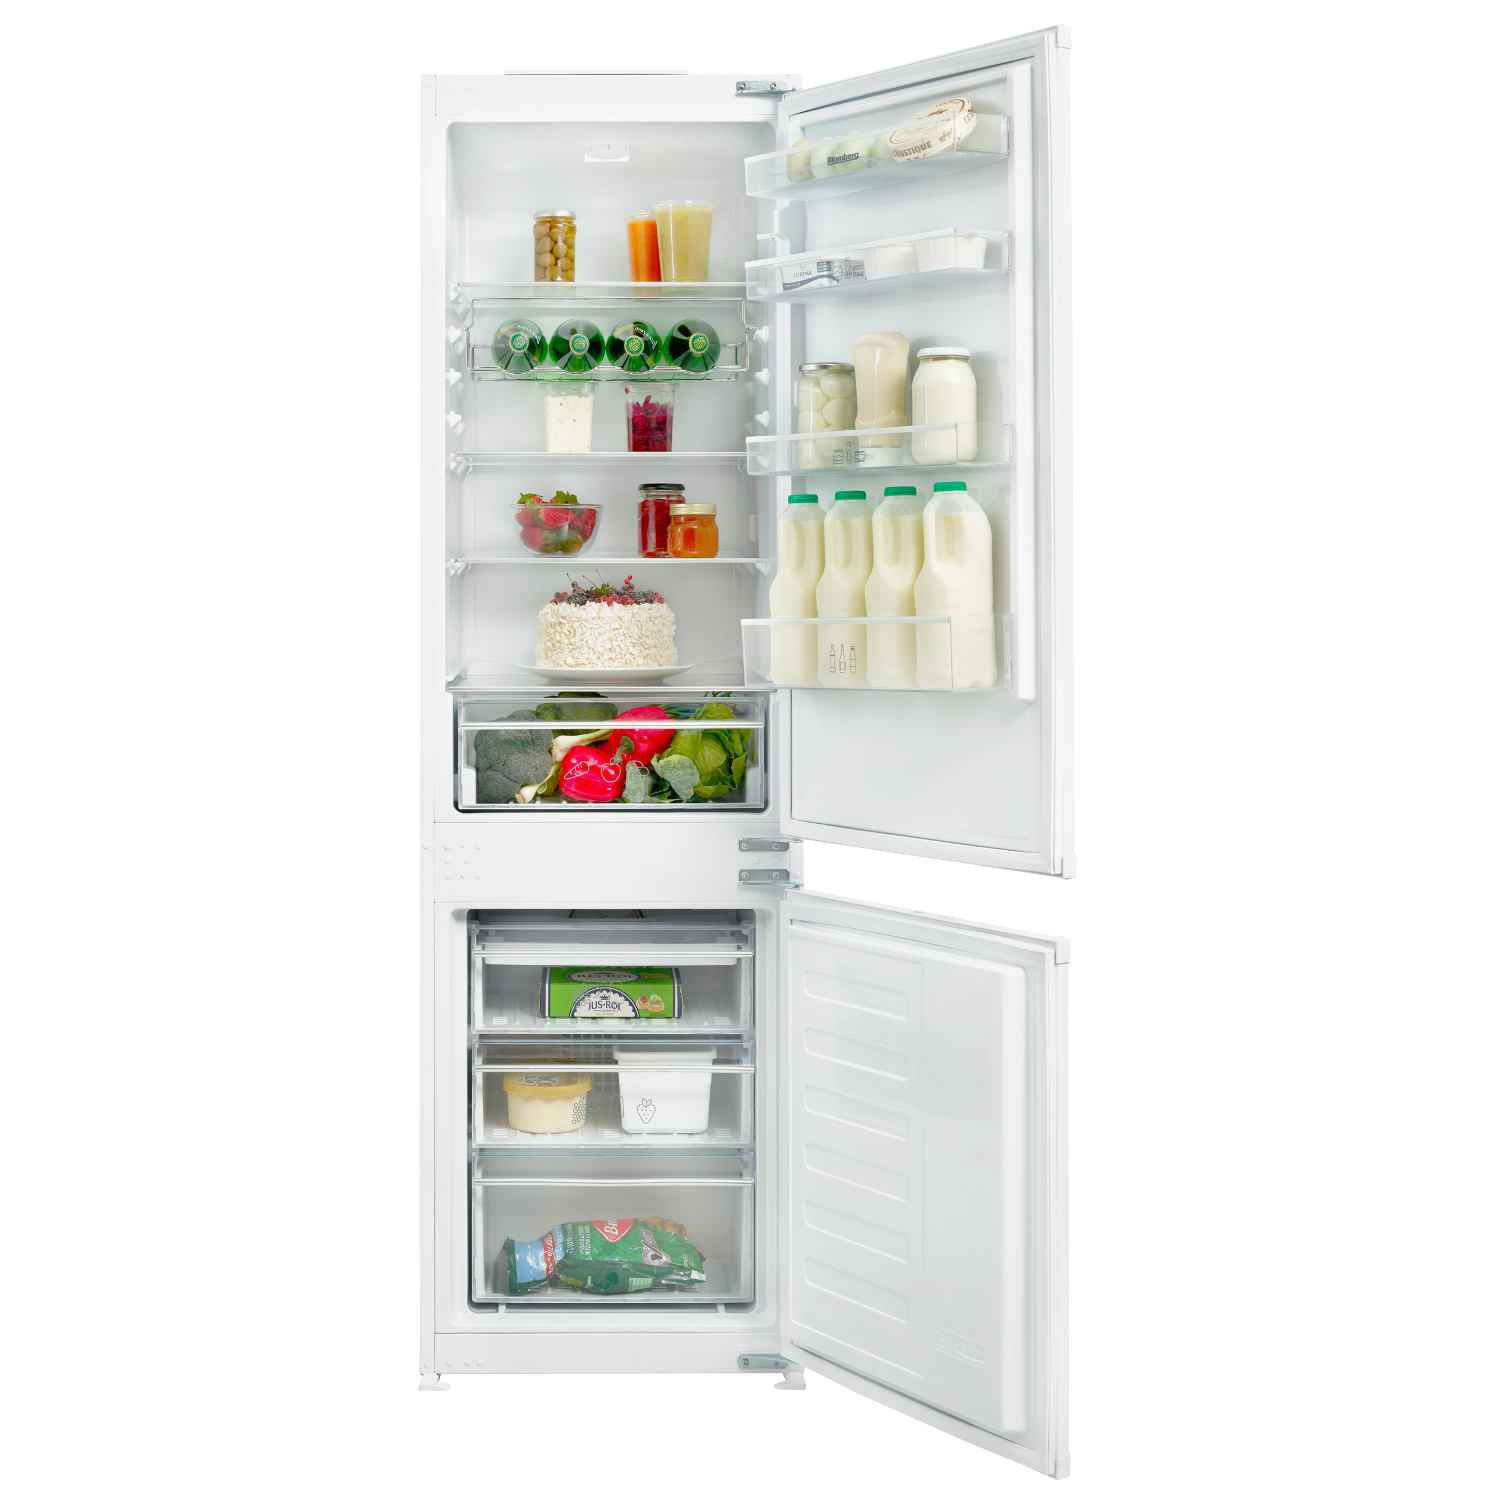 Blomberg Built In Frost Free Fridge Freezer KNM4551I